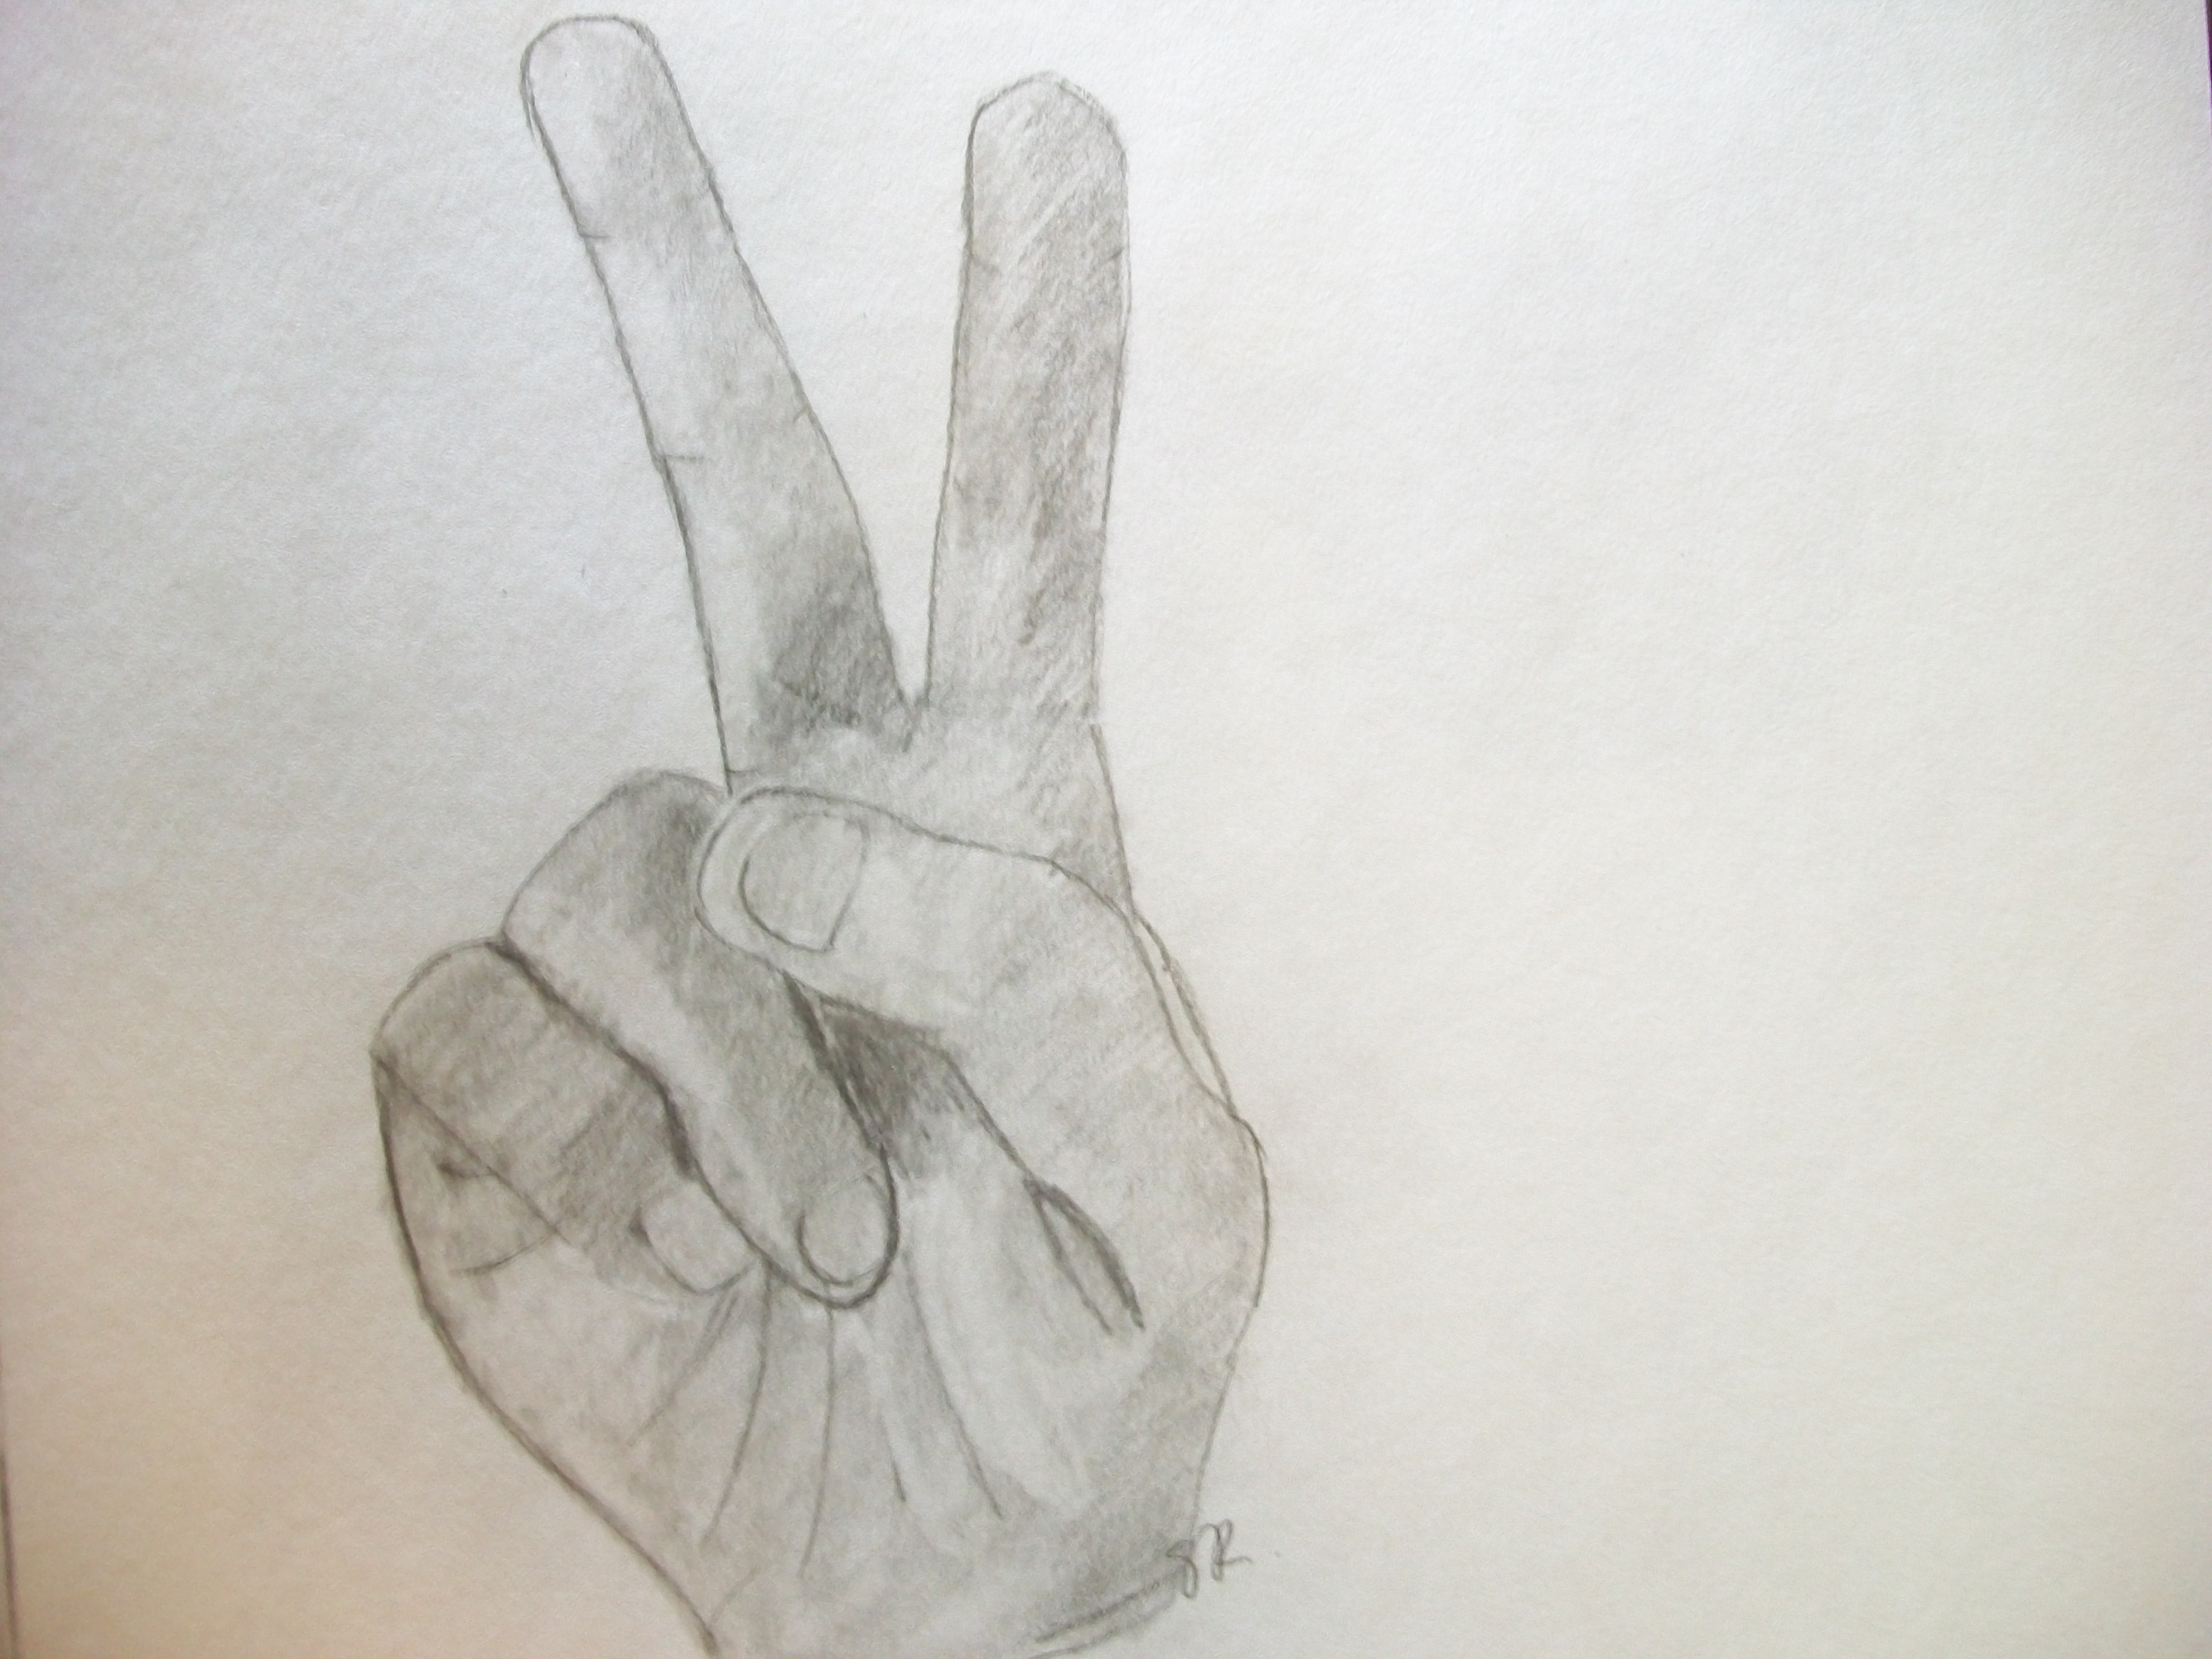 Drawn peace sign unique Collection To Ideas To Anime